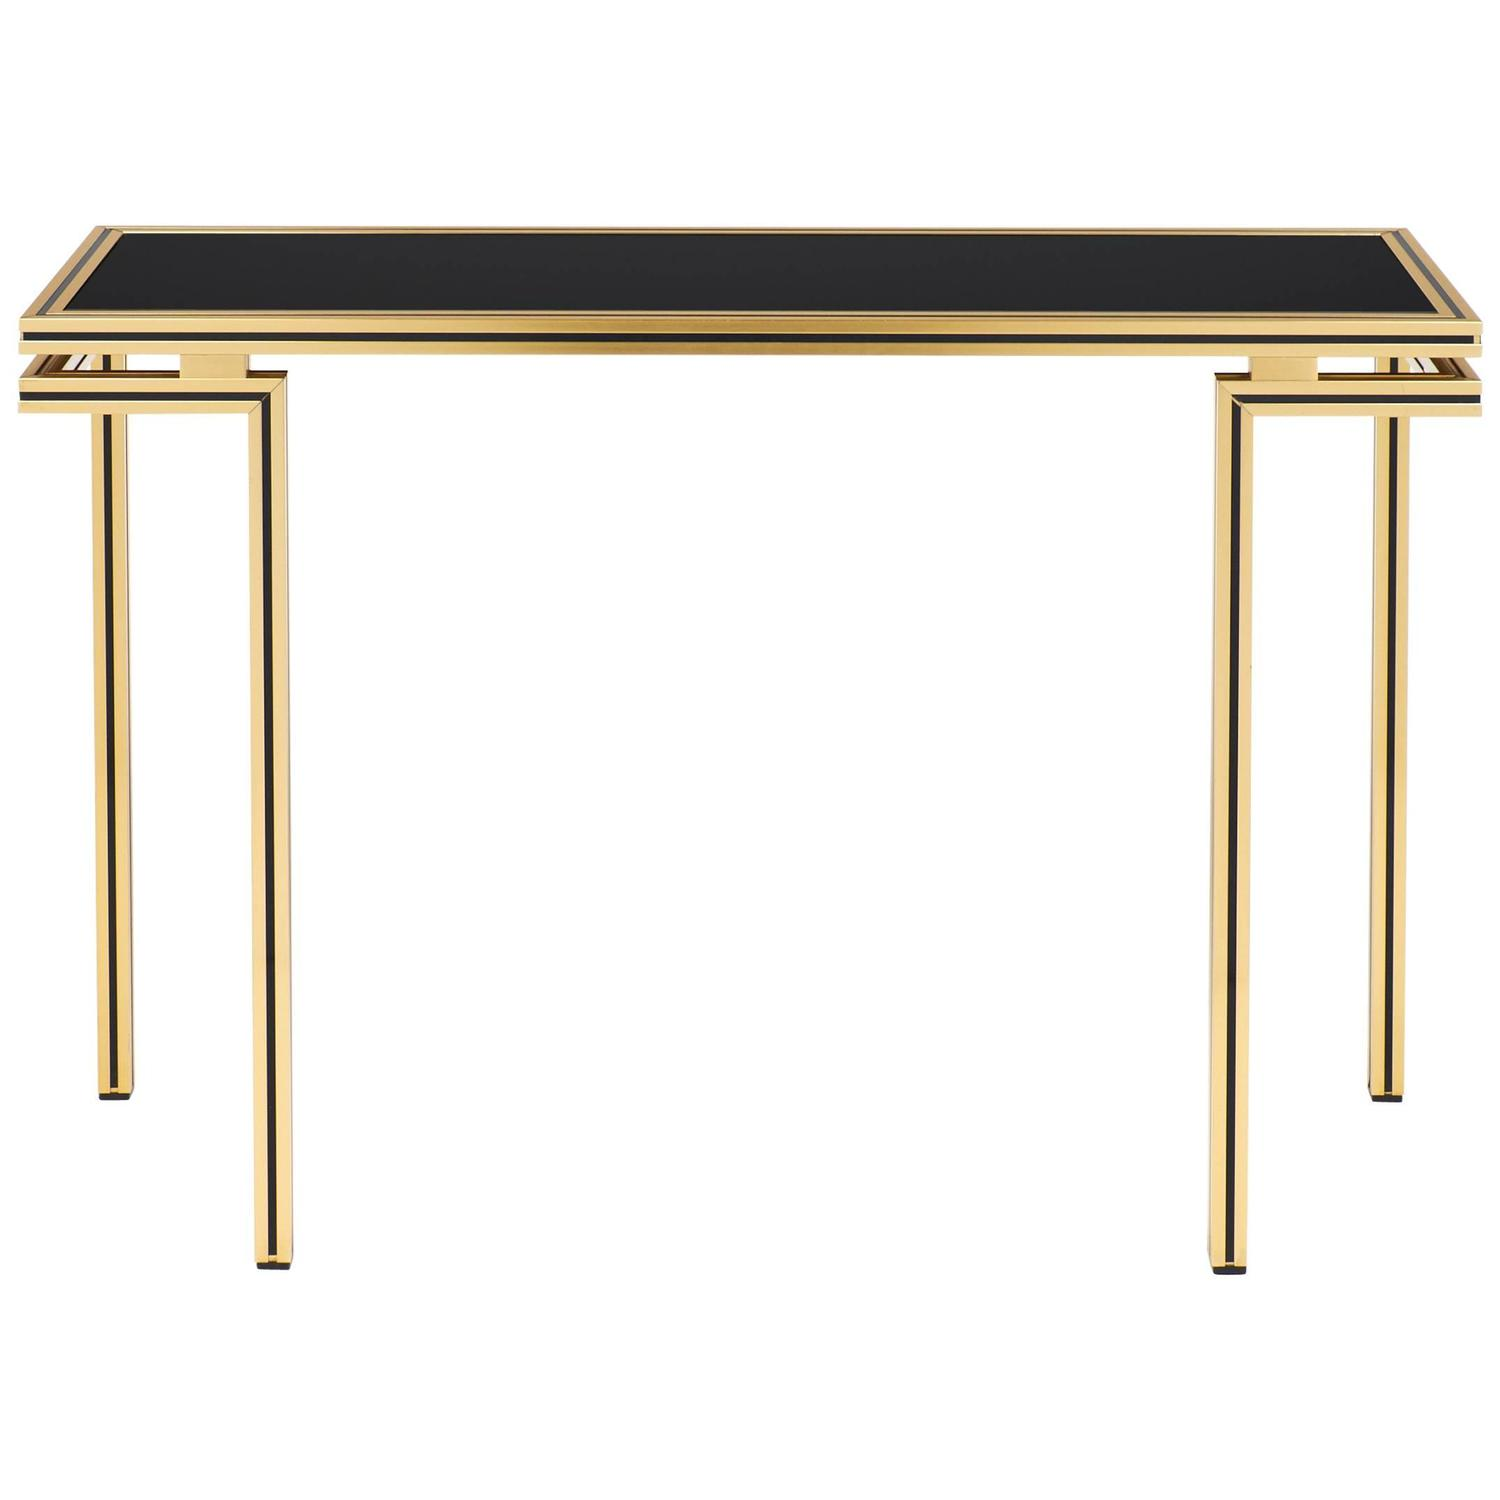 Vintage black glass top brass console table by pierre vandel at 1stdibs